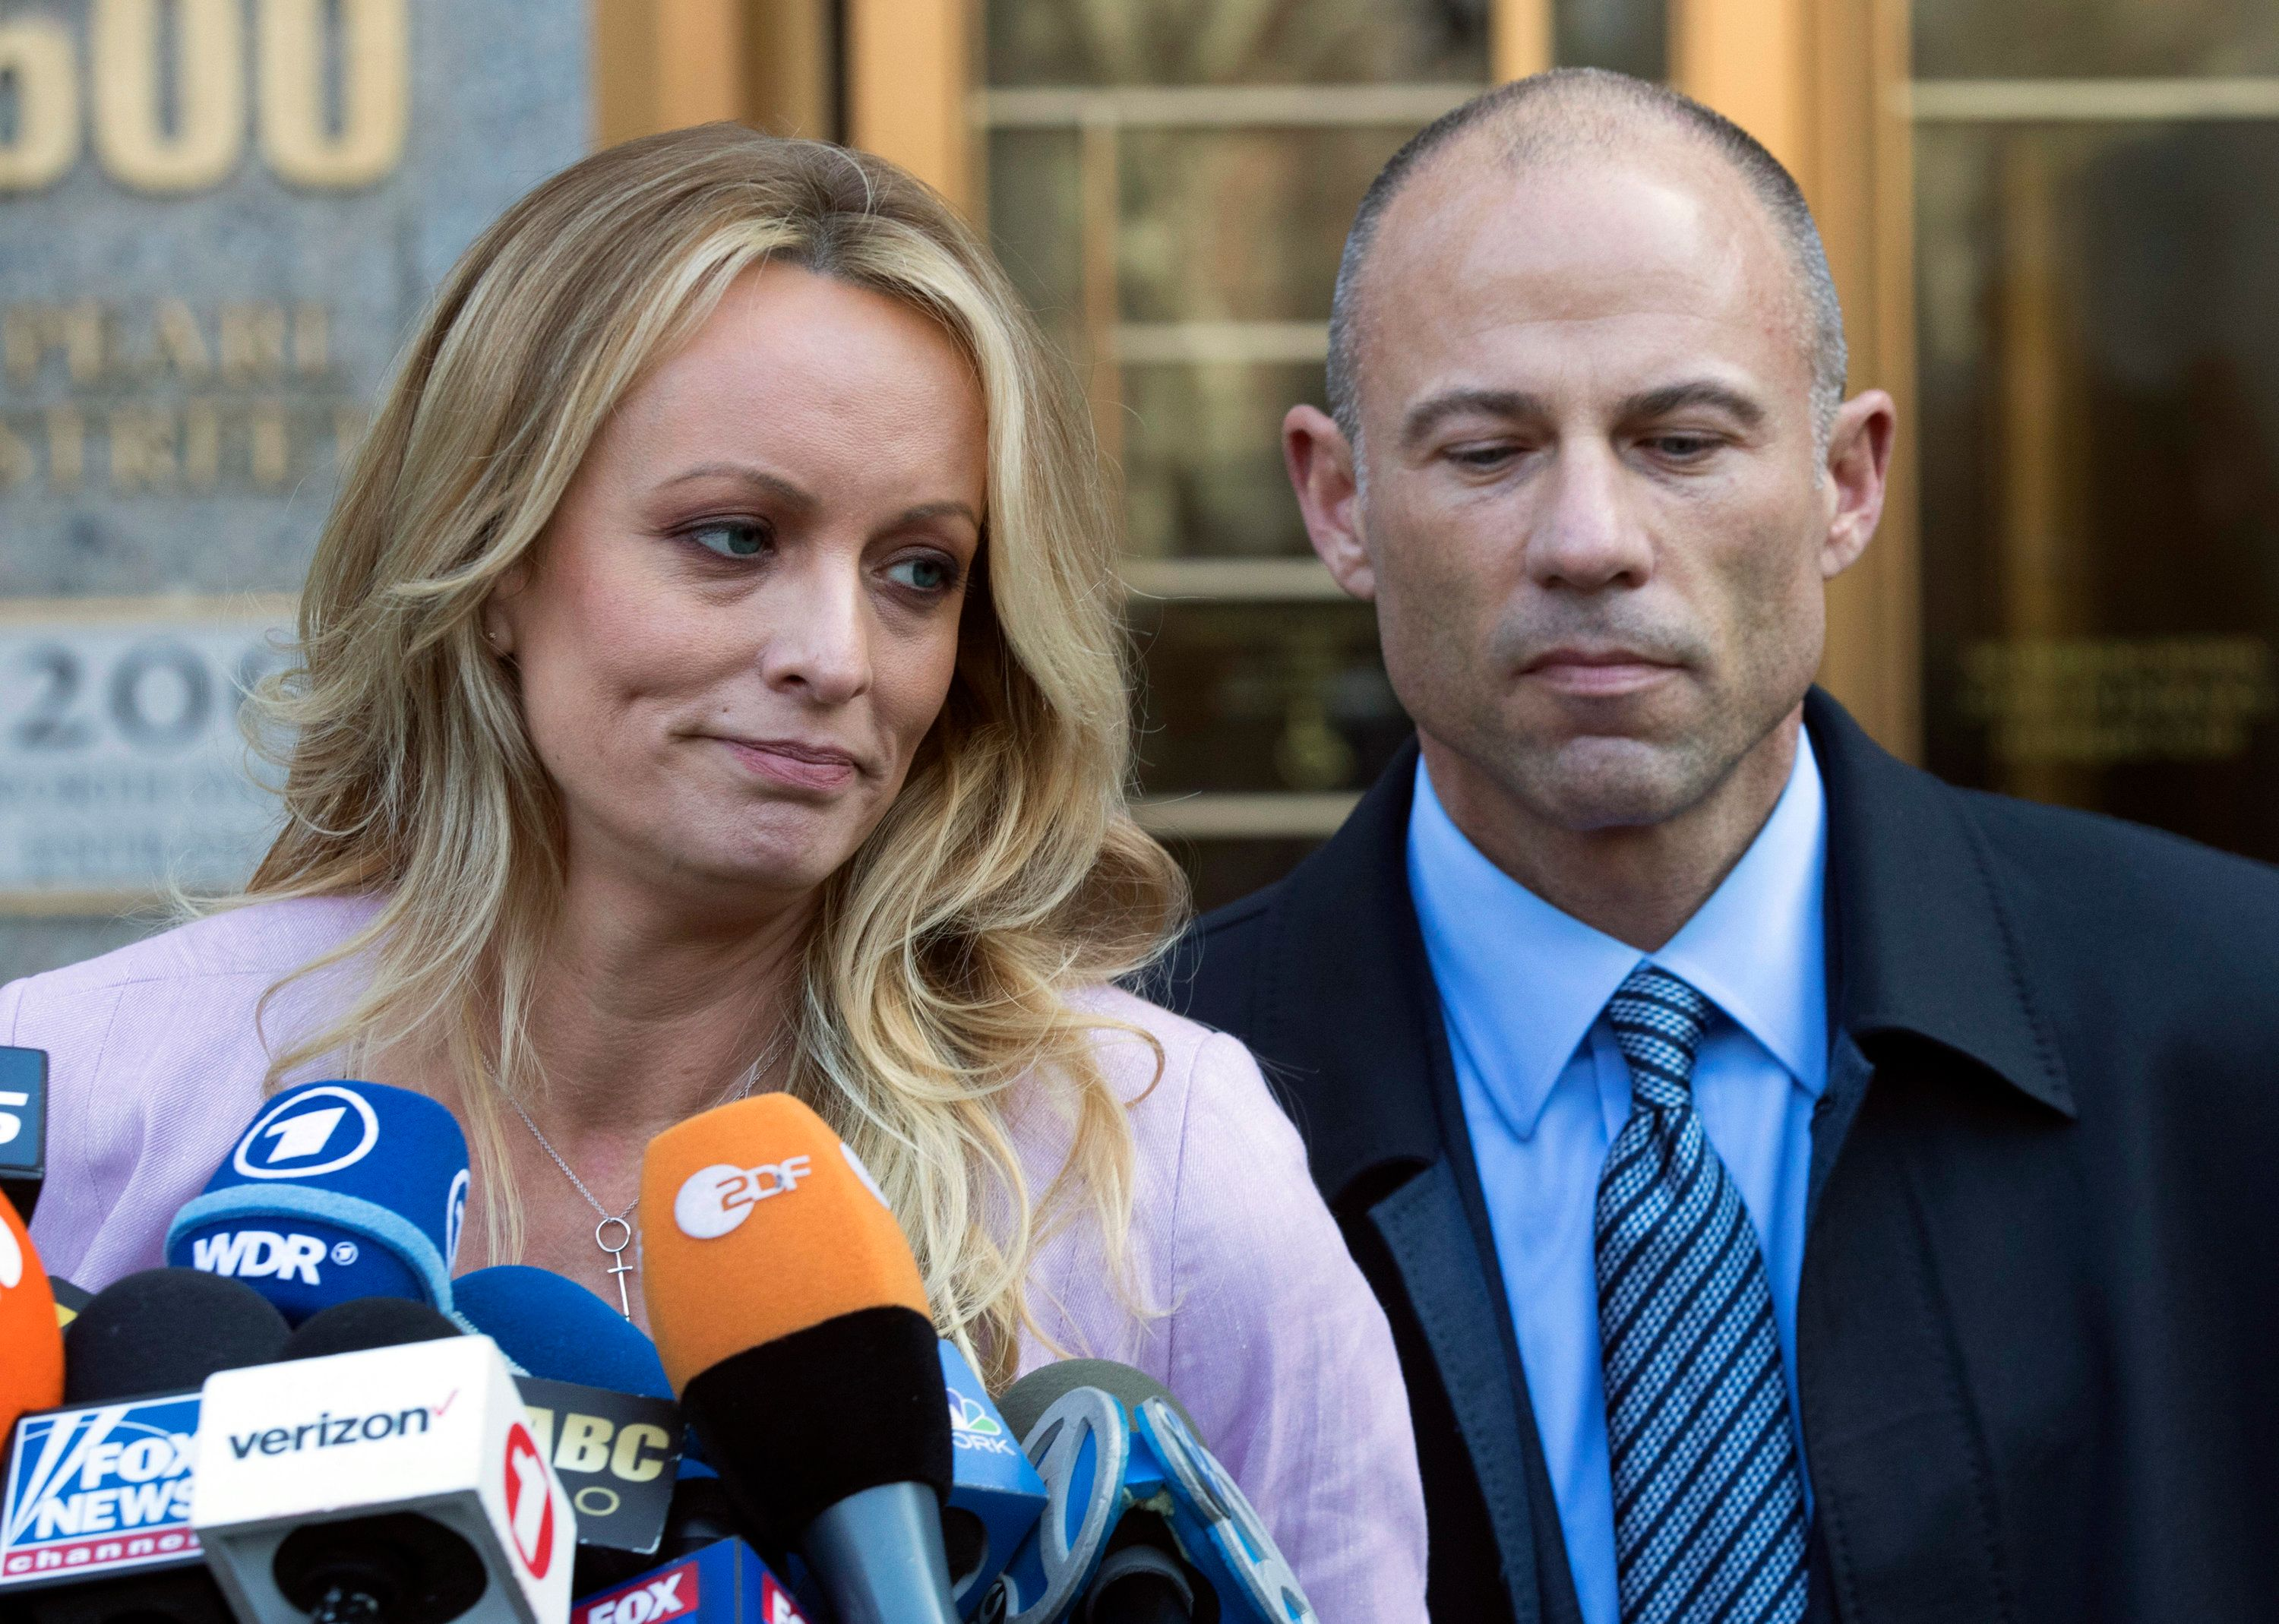 """FILE - In this April 16, 2018 file photo, adult film actress Stormy Daniels, left, stands with her lawyer Michael Avenatti as she speaks outside federal court, in New York. The Justice Department says Avenatti, made """"misrepresentations"""" in a bankruptcy case involving his former law firm that owes more than $440,000 in unpaid federal taxes. Avenatti said Wednesday, July 4, 2018, he doesn't owe any money personally and called the court filing """"politically motivated."""" (AP Photo/Mary Altaffer, File)"""